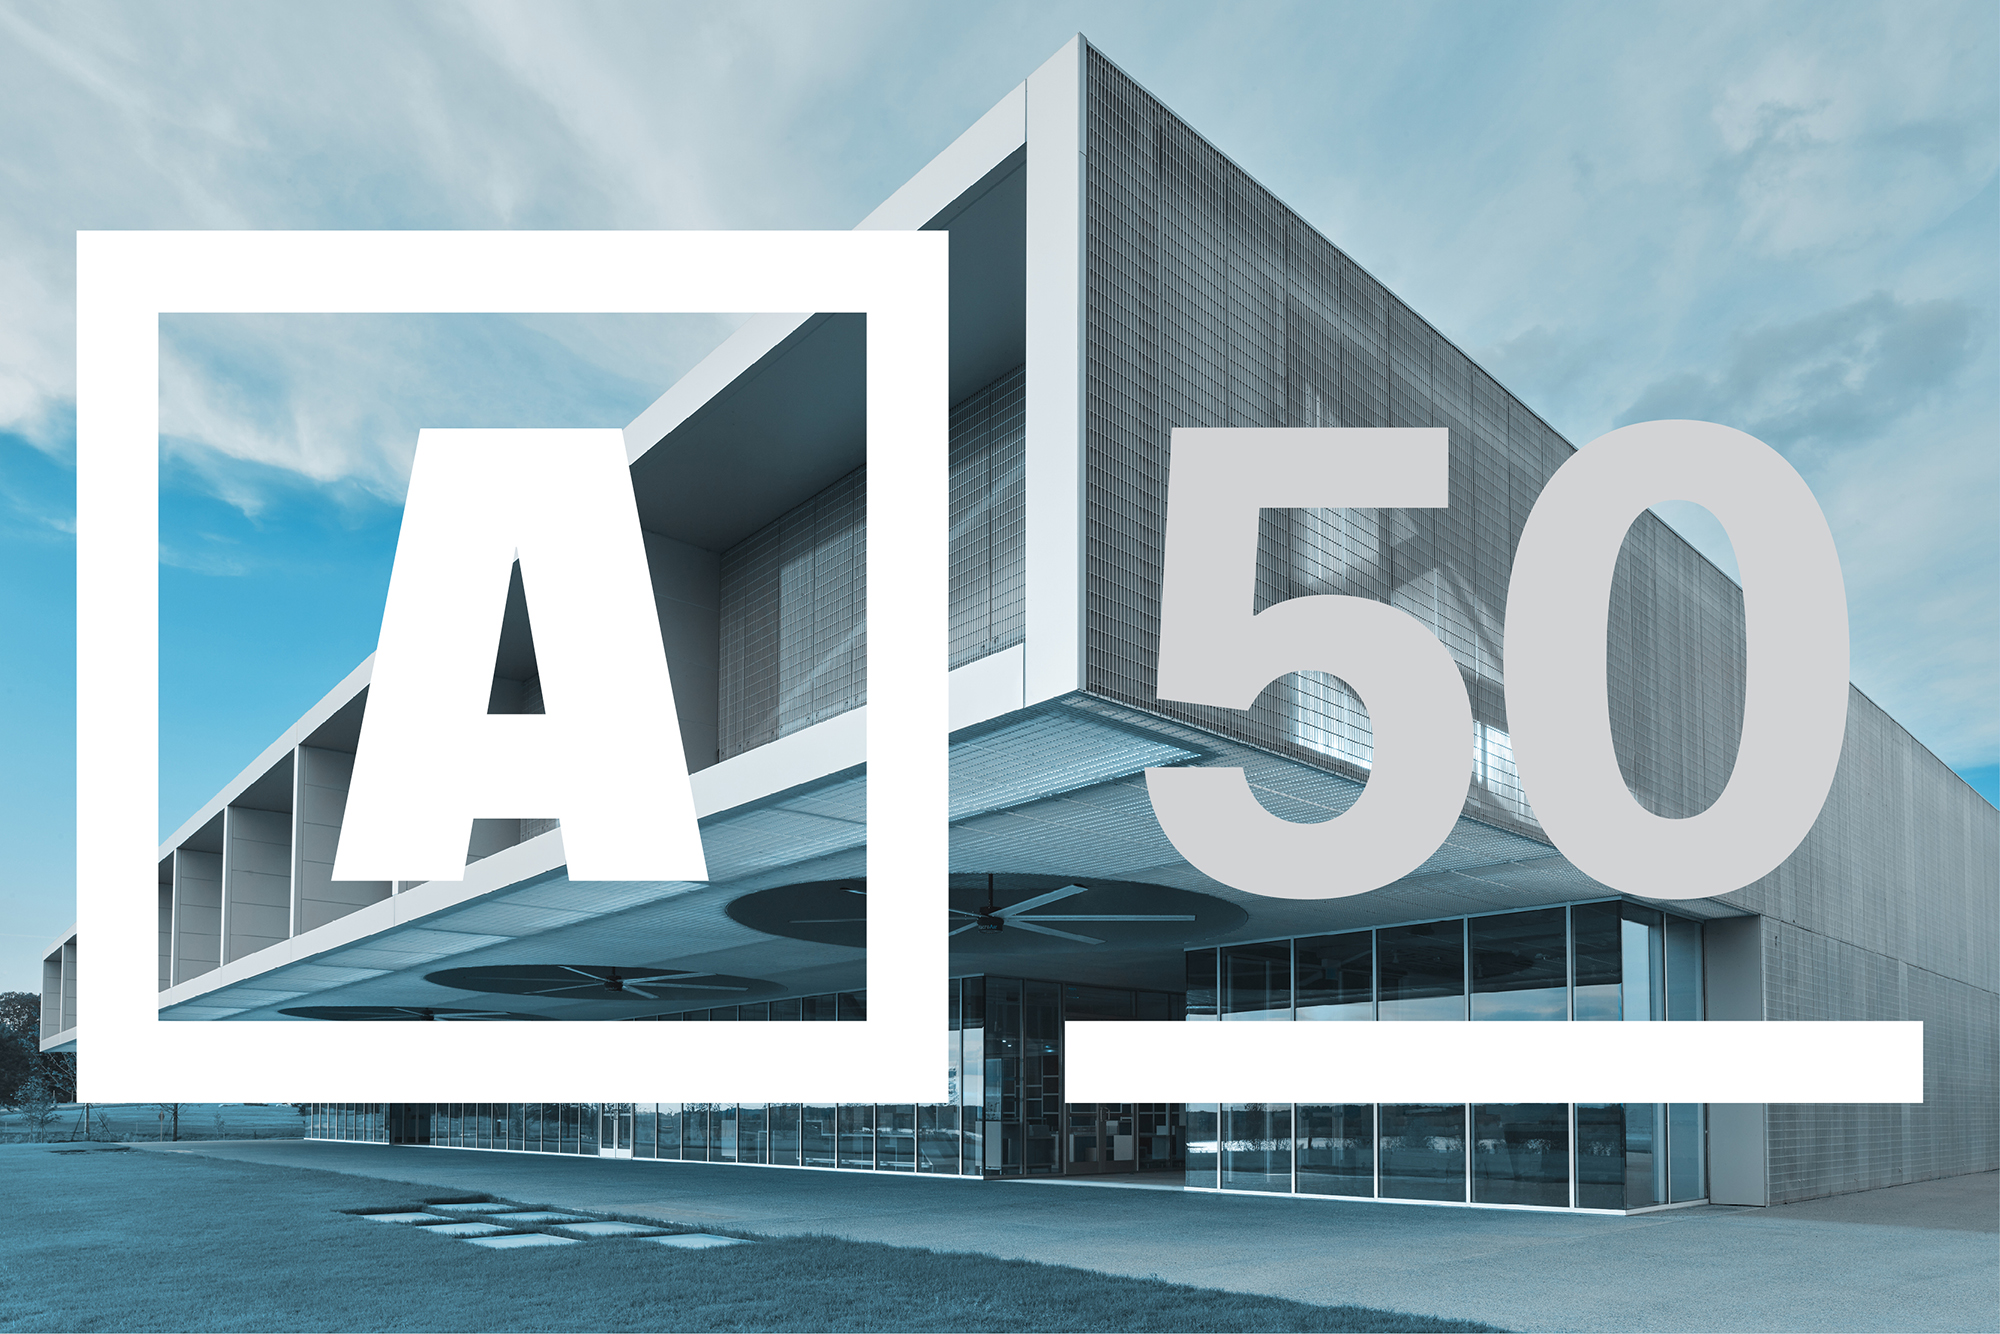 The 2016 architect 50 the top firm in design architect magazine the 2016 architect 50 the top firm in design architect magazine design architects architecture malvernweather Gallery